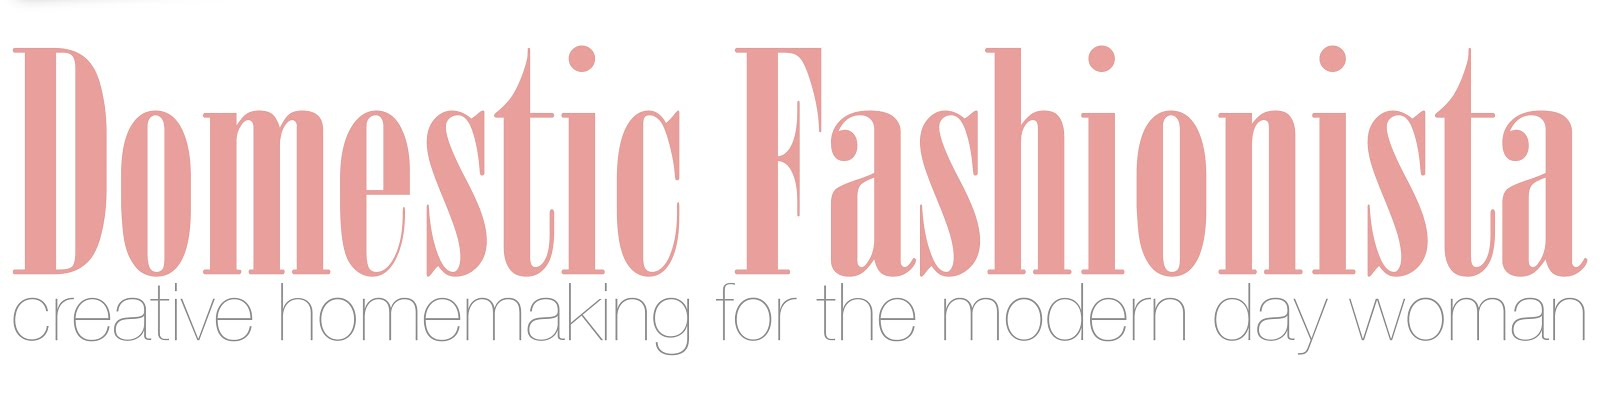 Domestic Fashionista Reviews